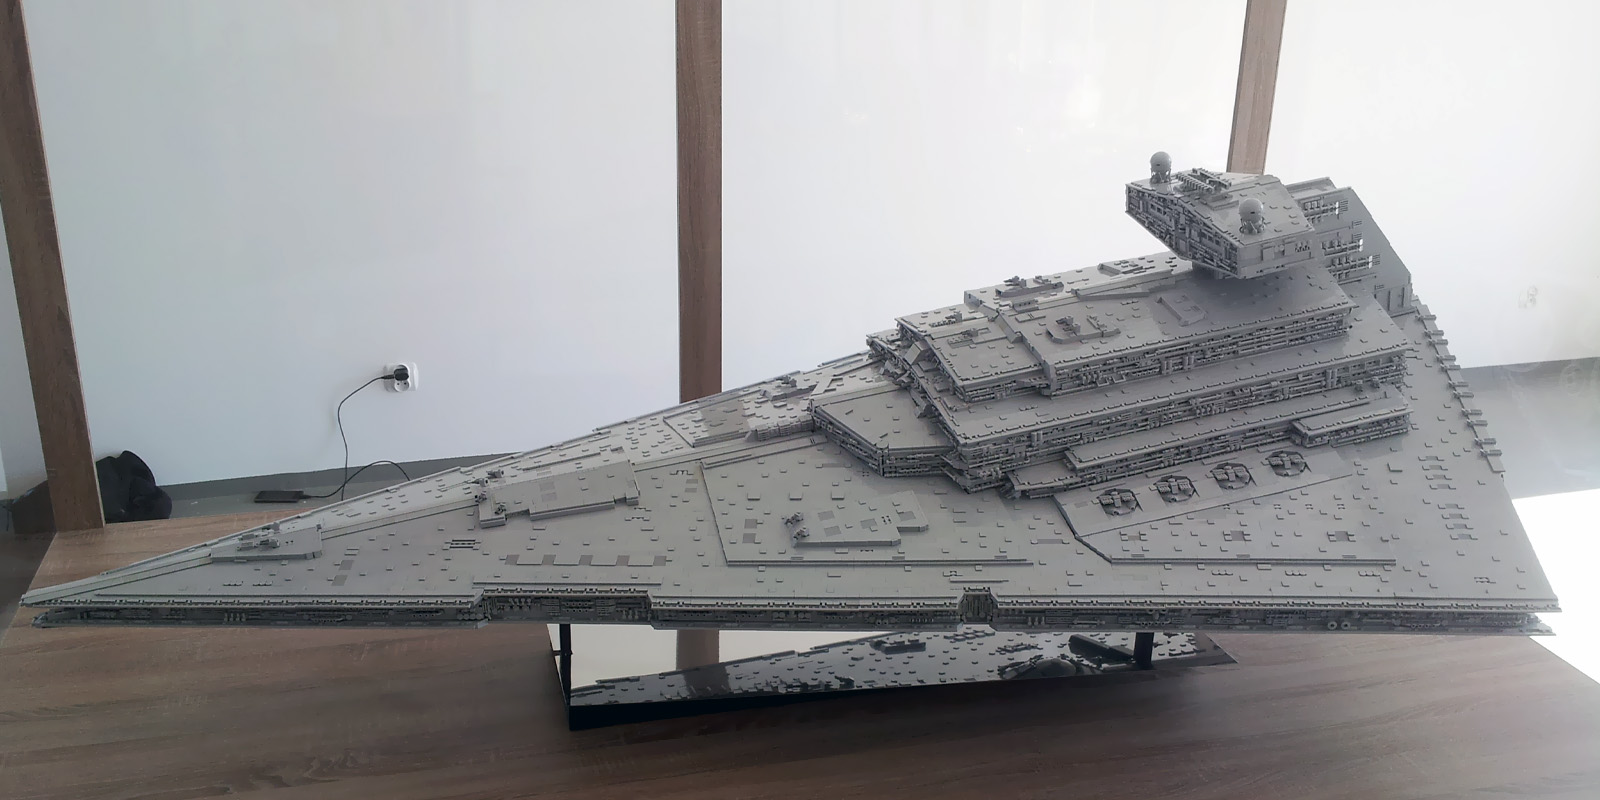 lego star destroyer - photo #10